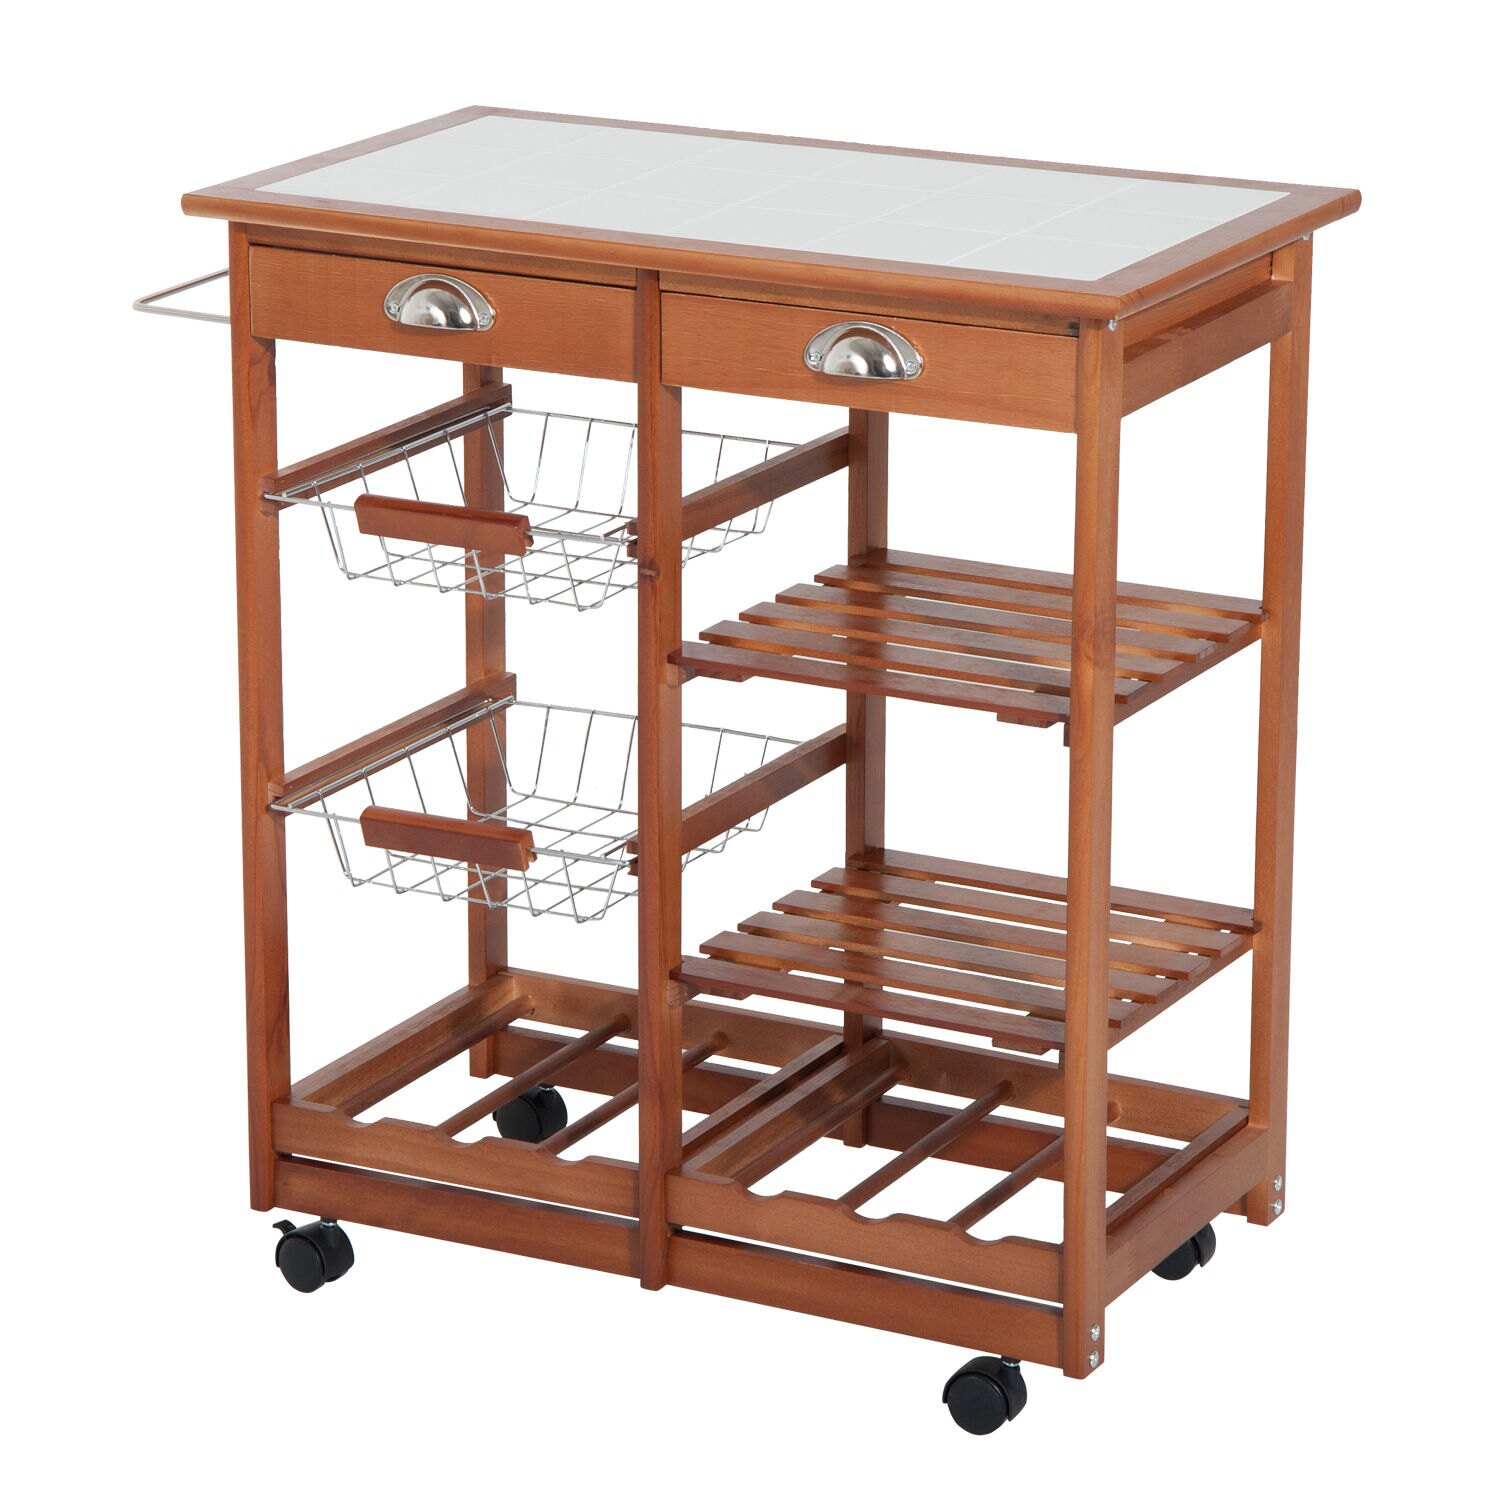 Homcom Rolling Tile Top Wooden Kitchen Trolley Microwave Cart With 6 Bottle Wine Rack 0